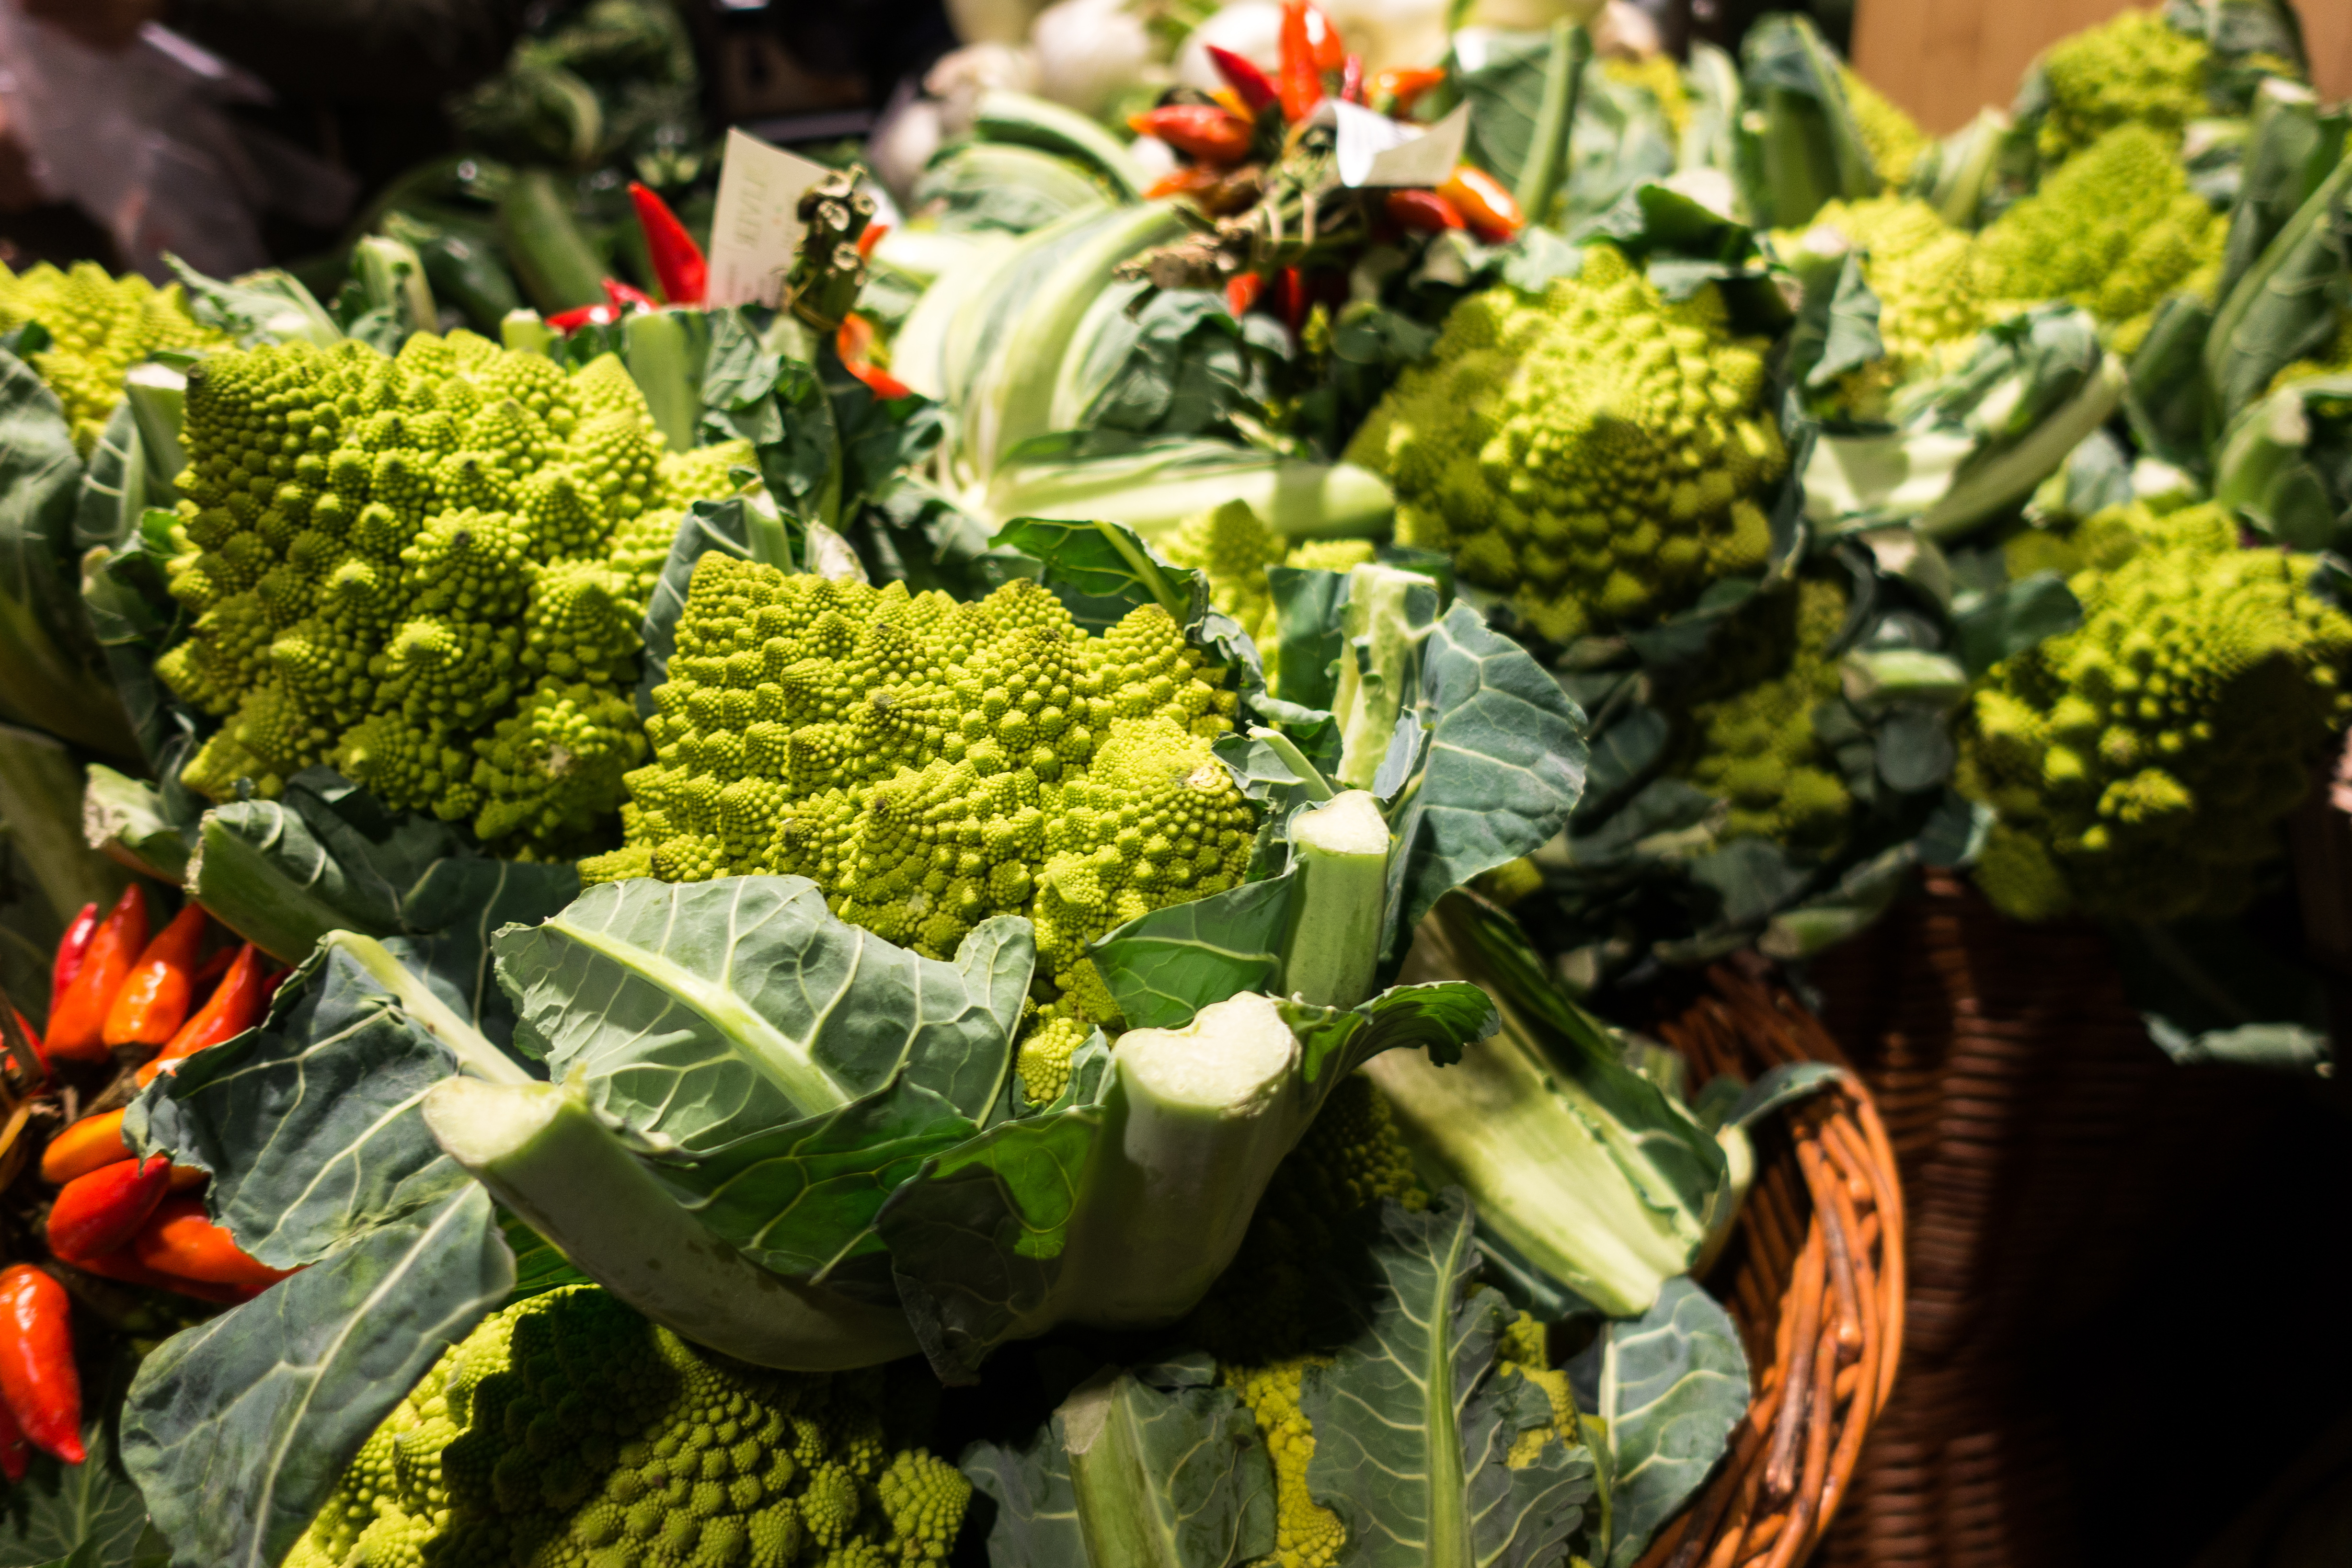 Romanesco broccoli in a grocery store